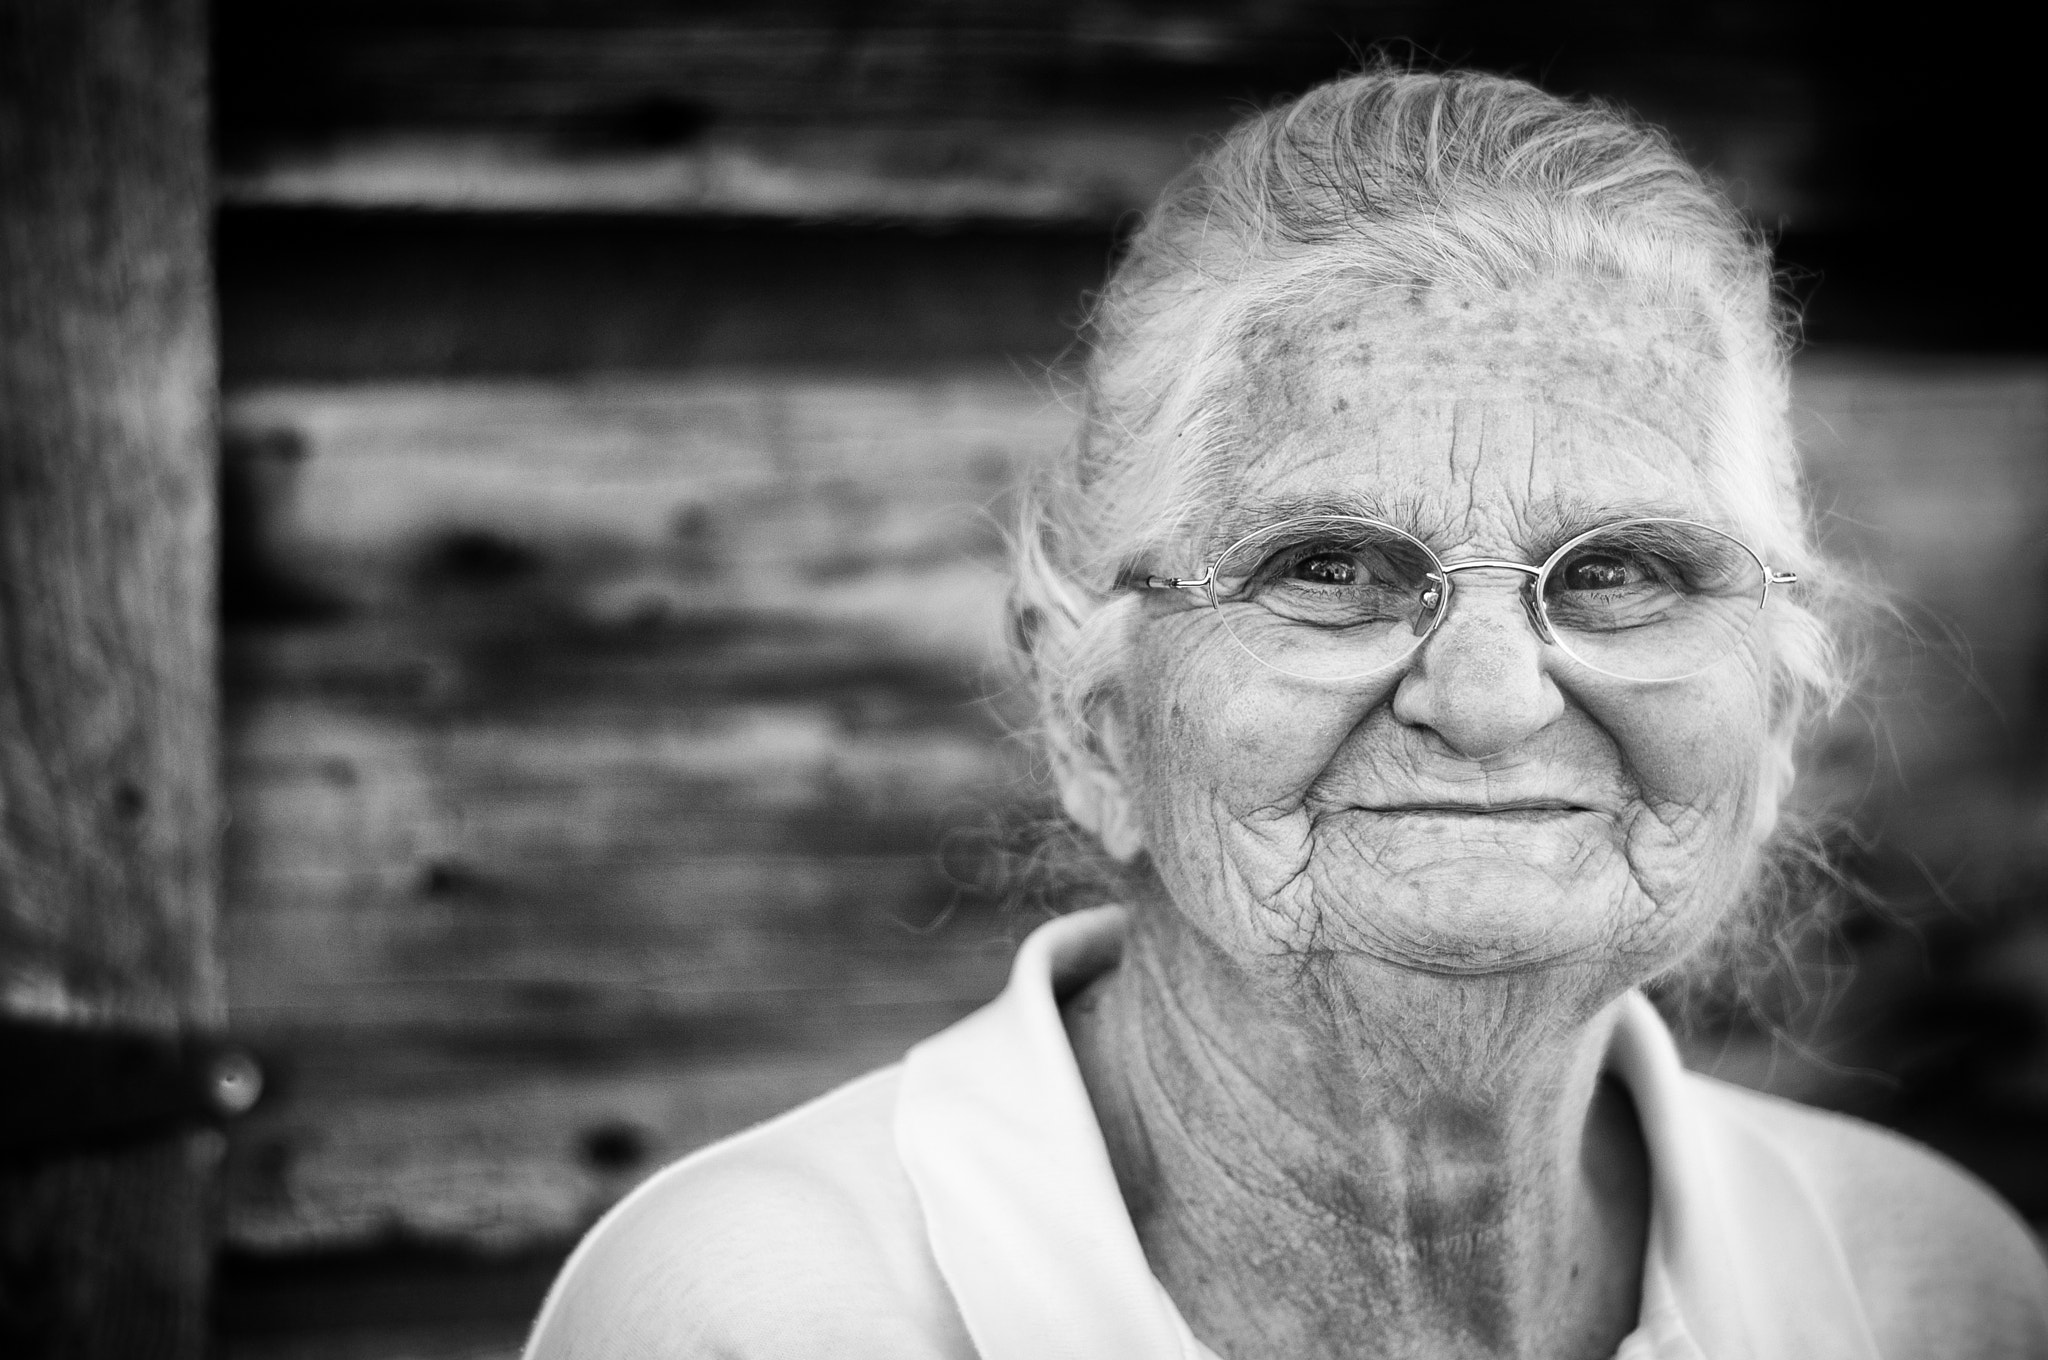 Photograph Aged to Perfection by Nathan Mays on 500px